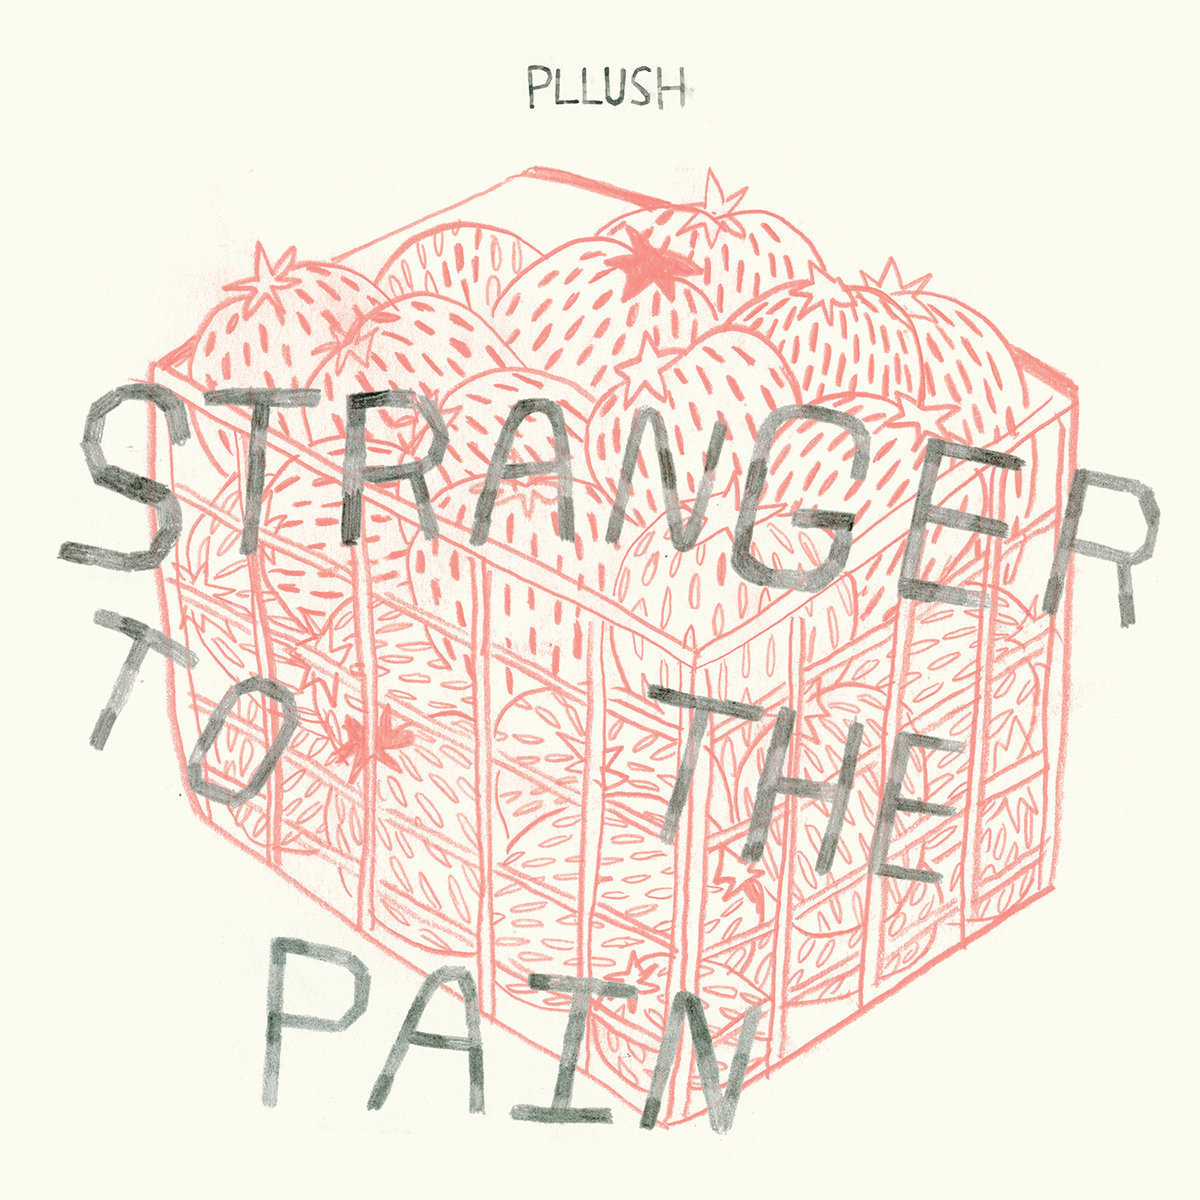 Pllush / Stranger to the Pain(300 Ltd LP)